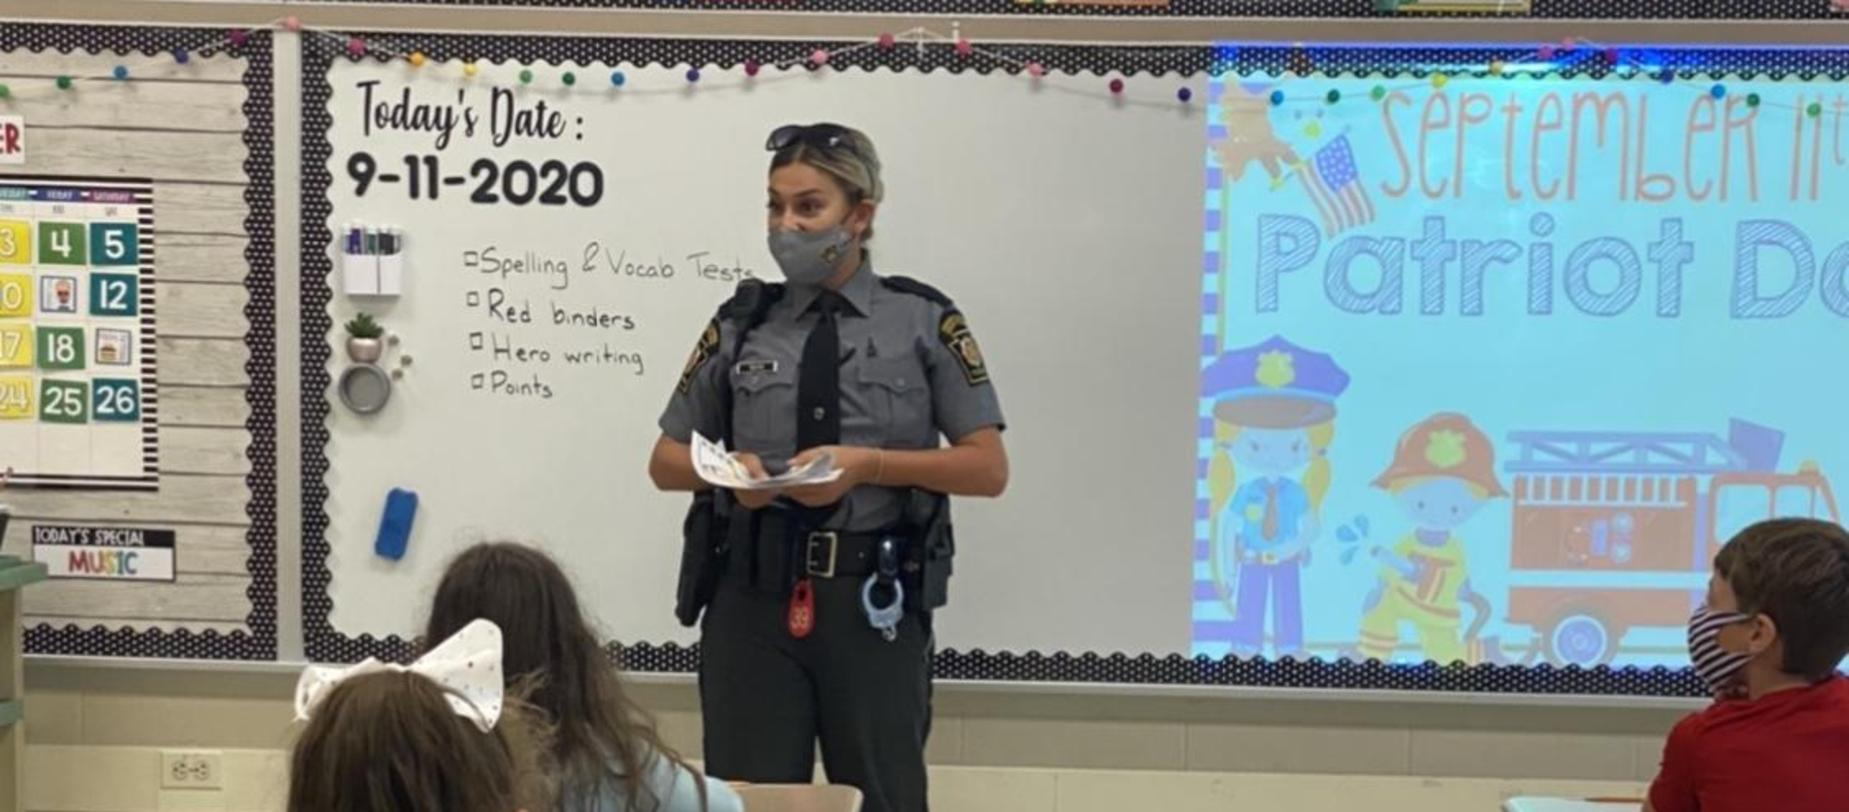 police officer talking to students